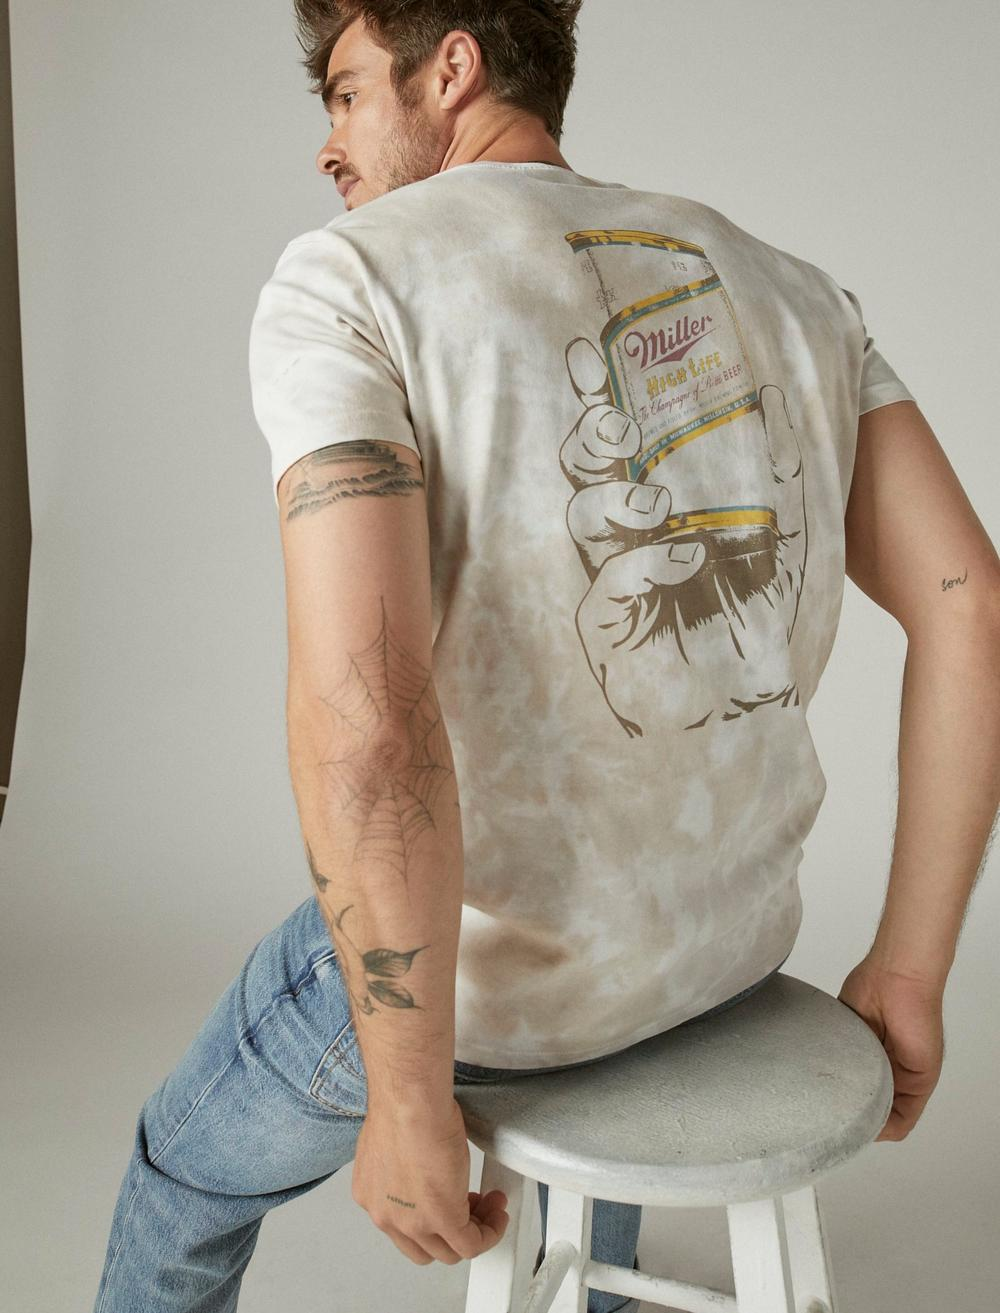 MILLER HIGH LIFE GRAPHIC TEE, image 6